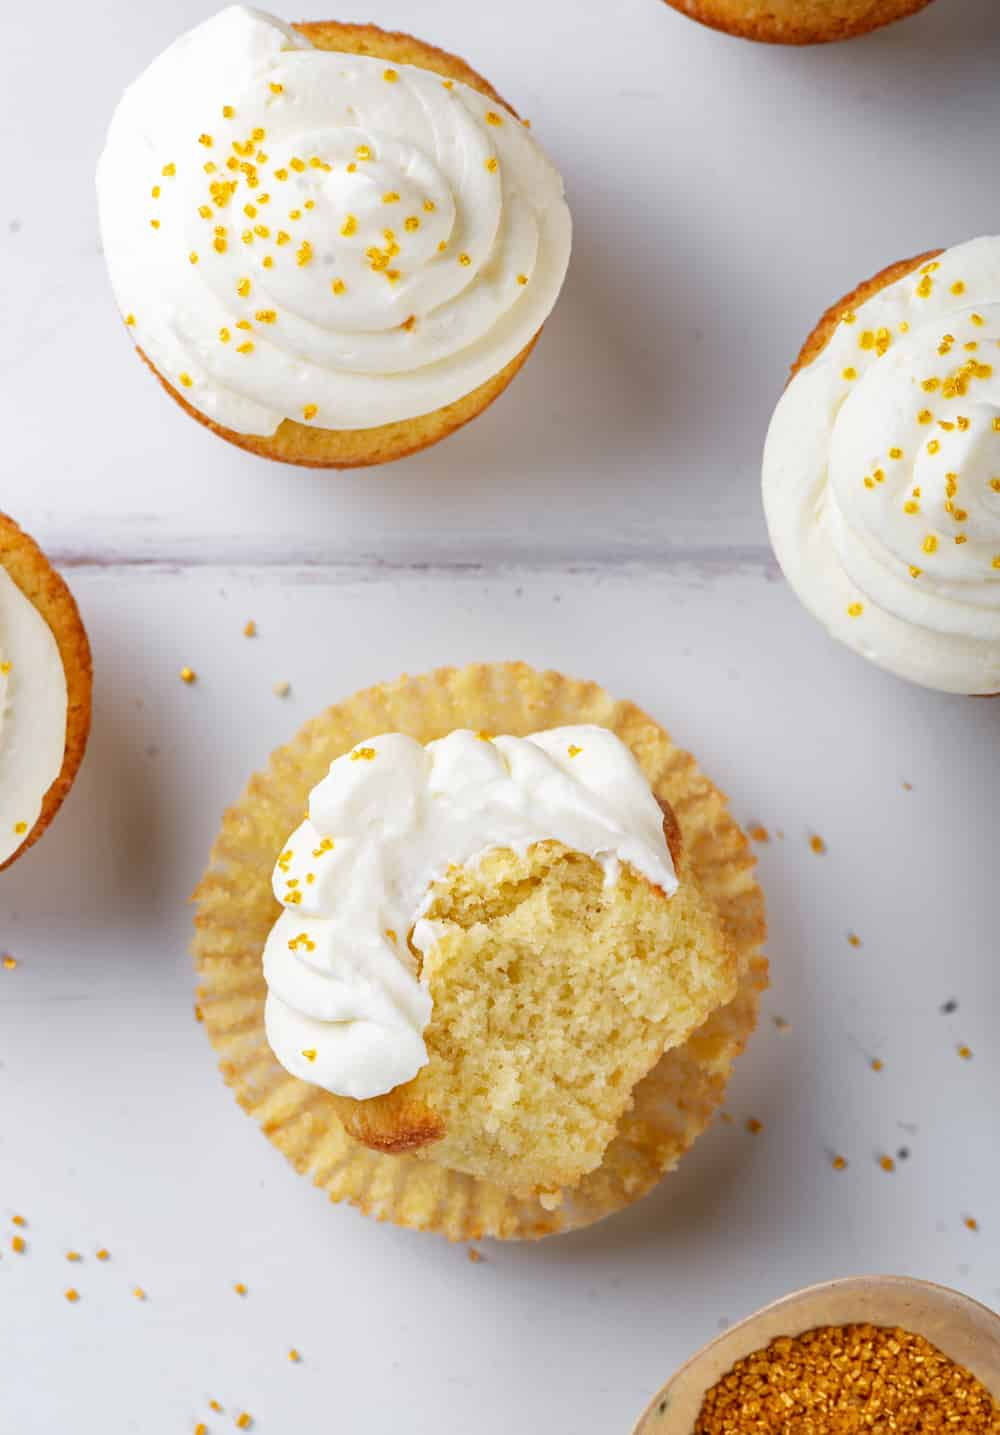 An overhead view of a keto vanilla cupcake with keto cream cheese frosting on it. The cupcake is on its back with a bite taken out of it with the inside of the cupcake facing up. There are two frosted cupcakes standing upright behind the cupcake . All the cupcakes are on a white counter.